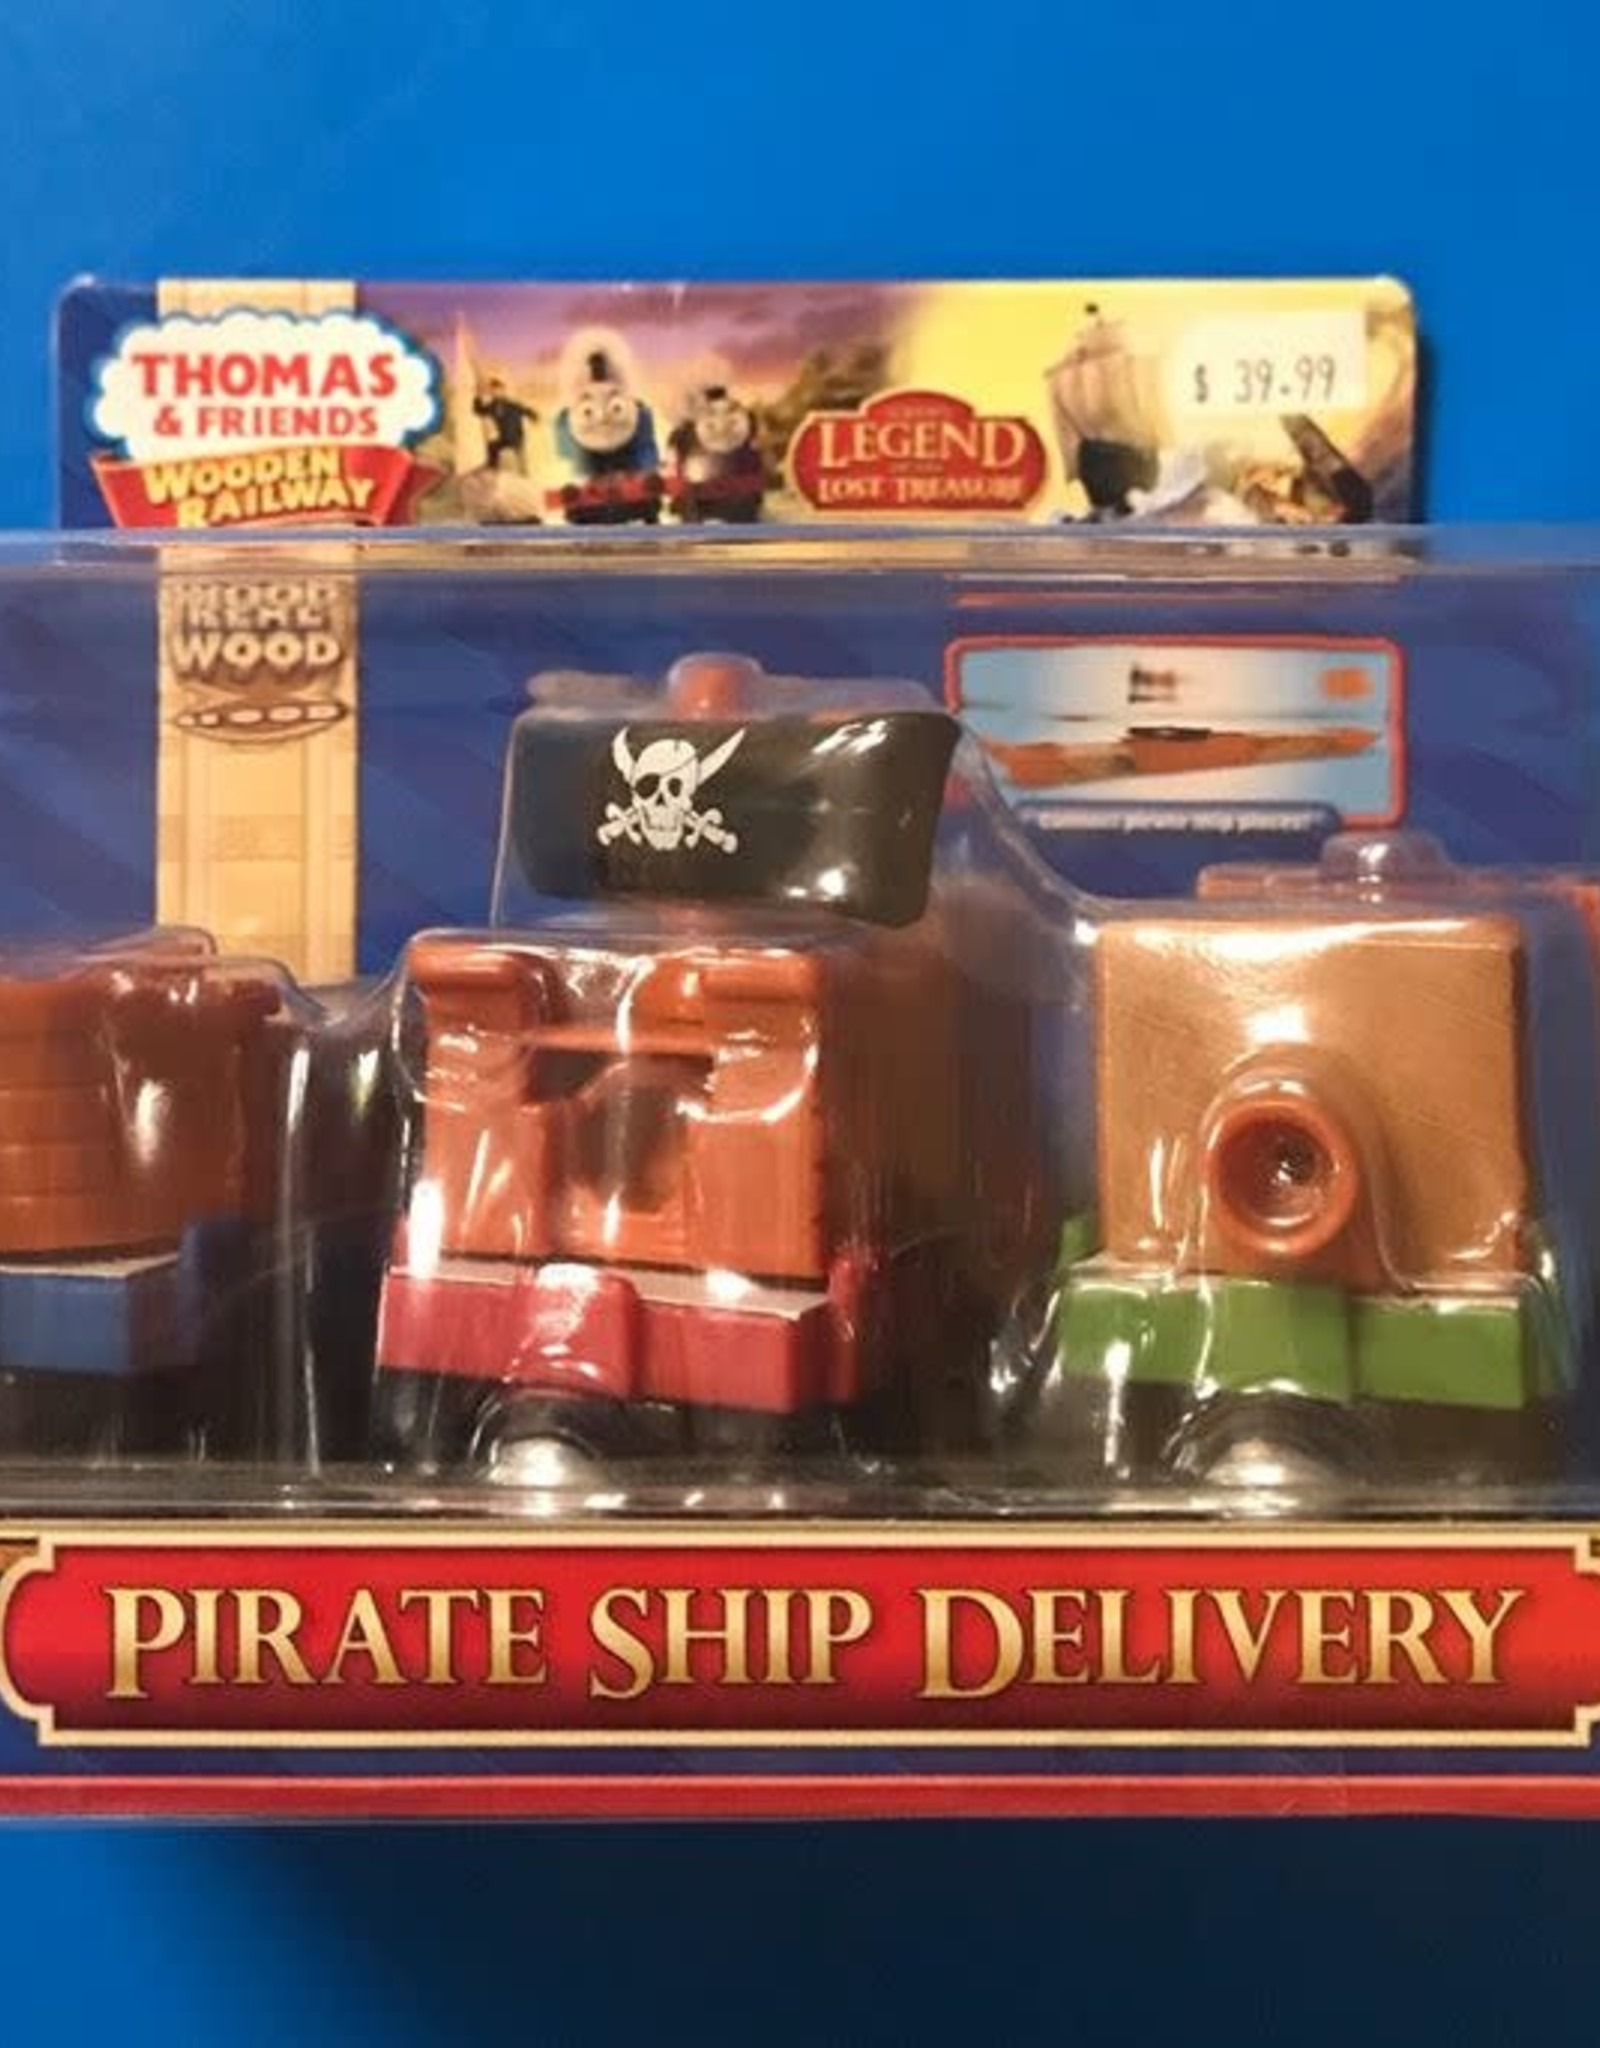 PIRATE SHIP DELIVERY